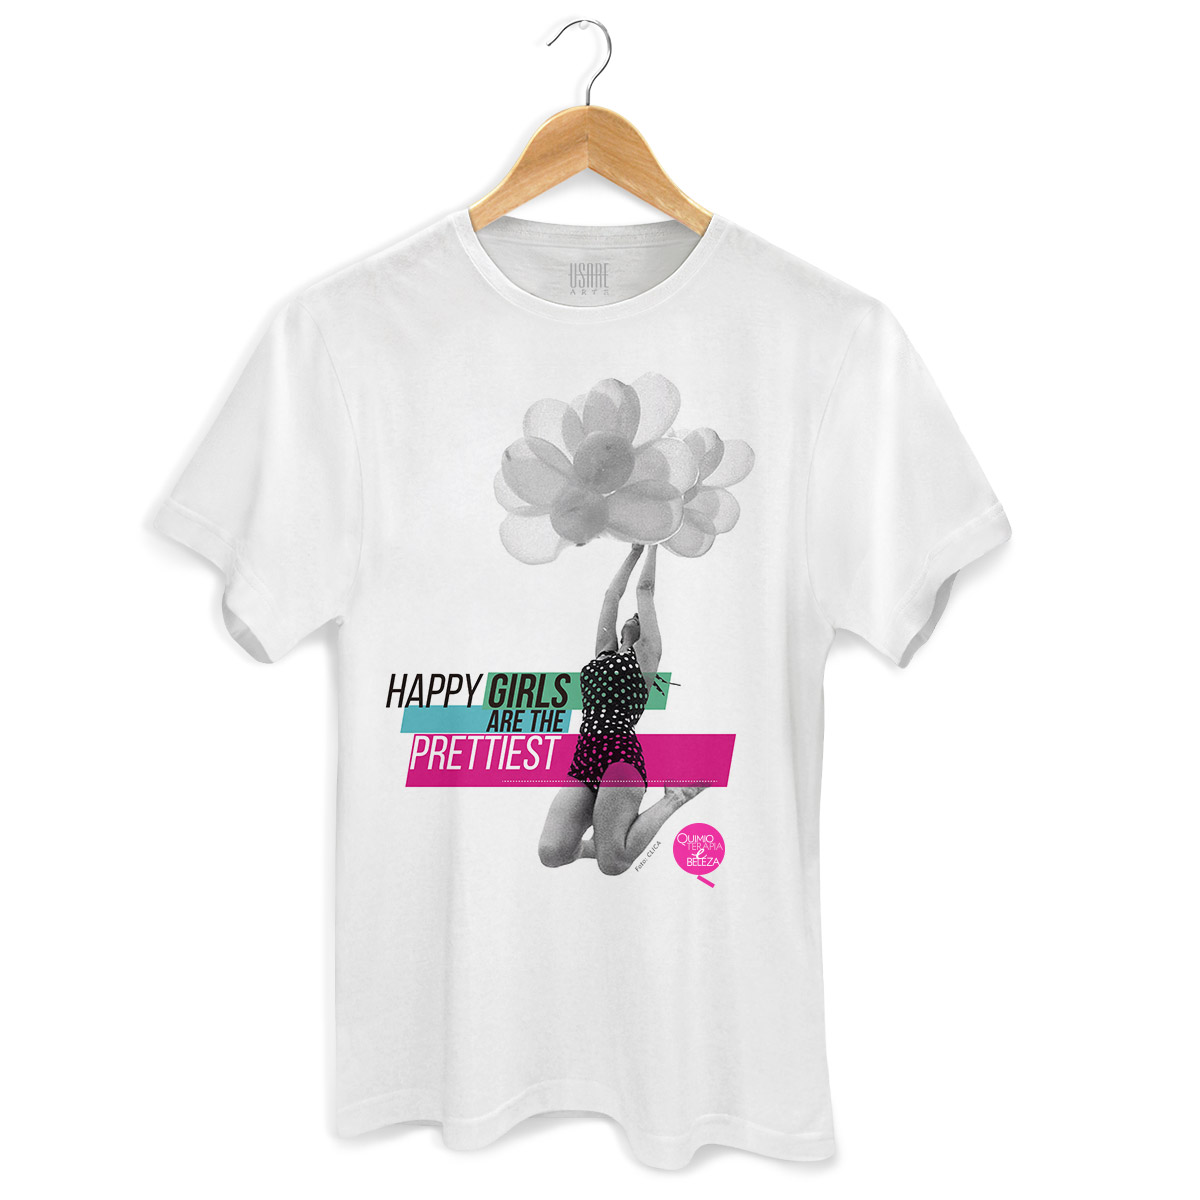 Camiseta Masculina QeB Happy Girls